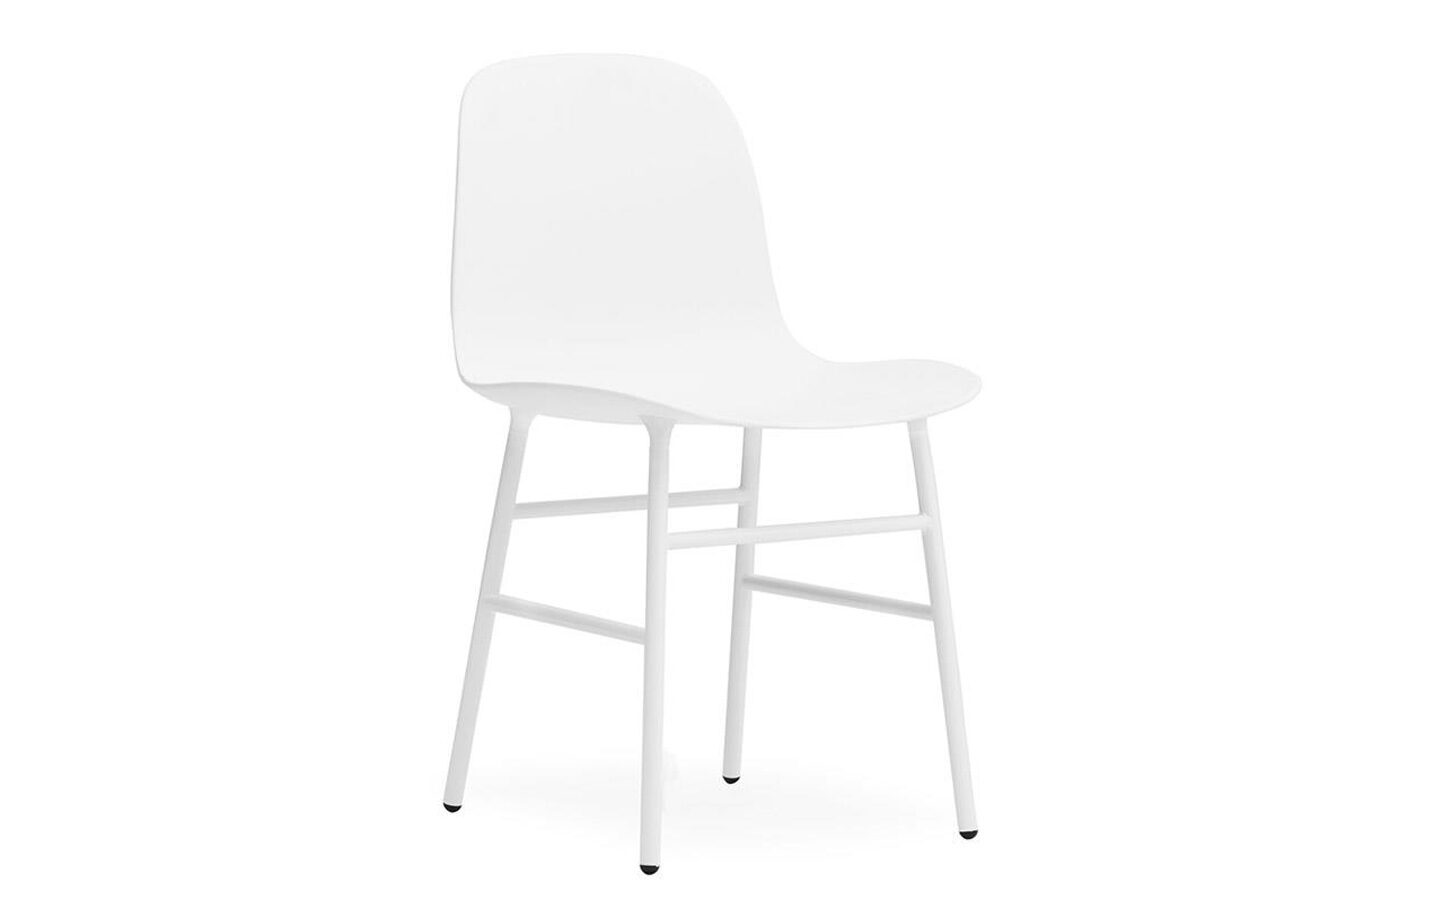 Form-chair-steel-White-by-Normann